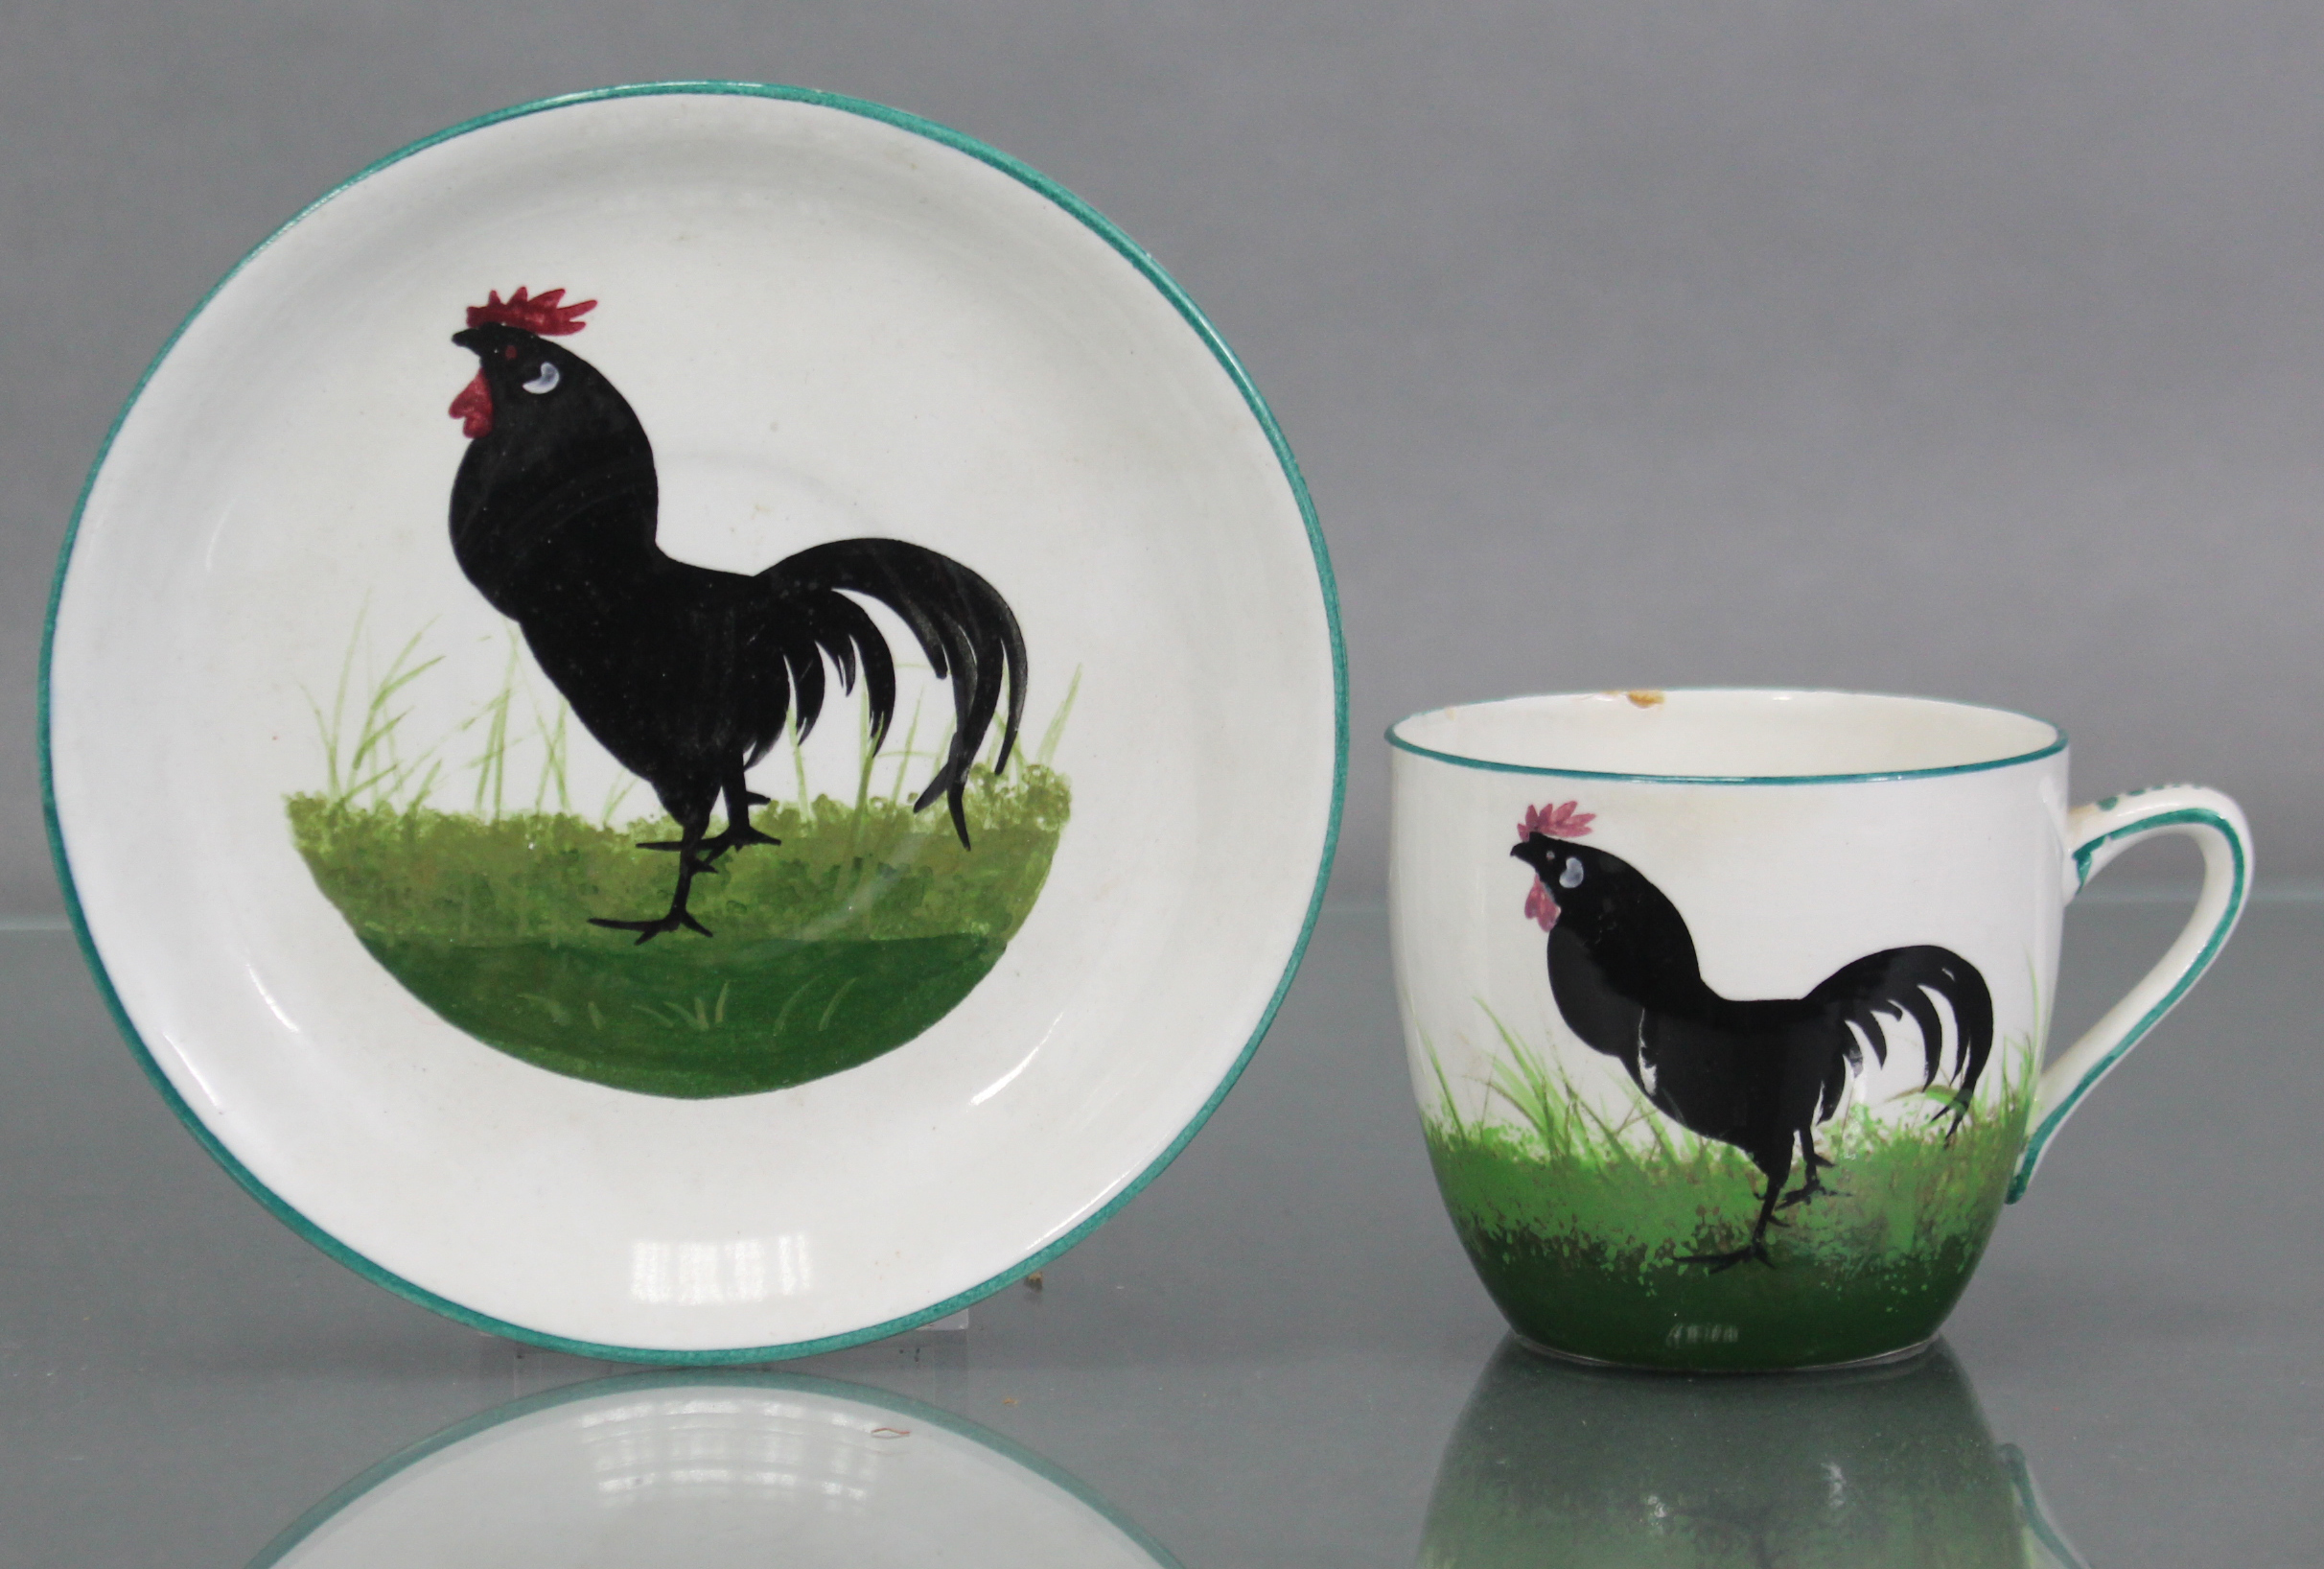 Lot 164 - A Wemyss pottery cream-ground teacup & saucer with painted decoration of a cockerel amongst grass;